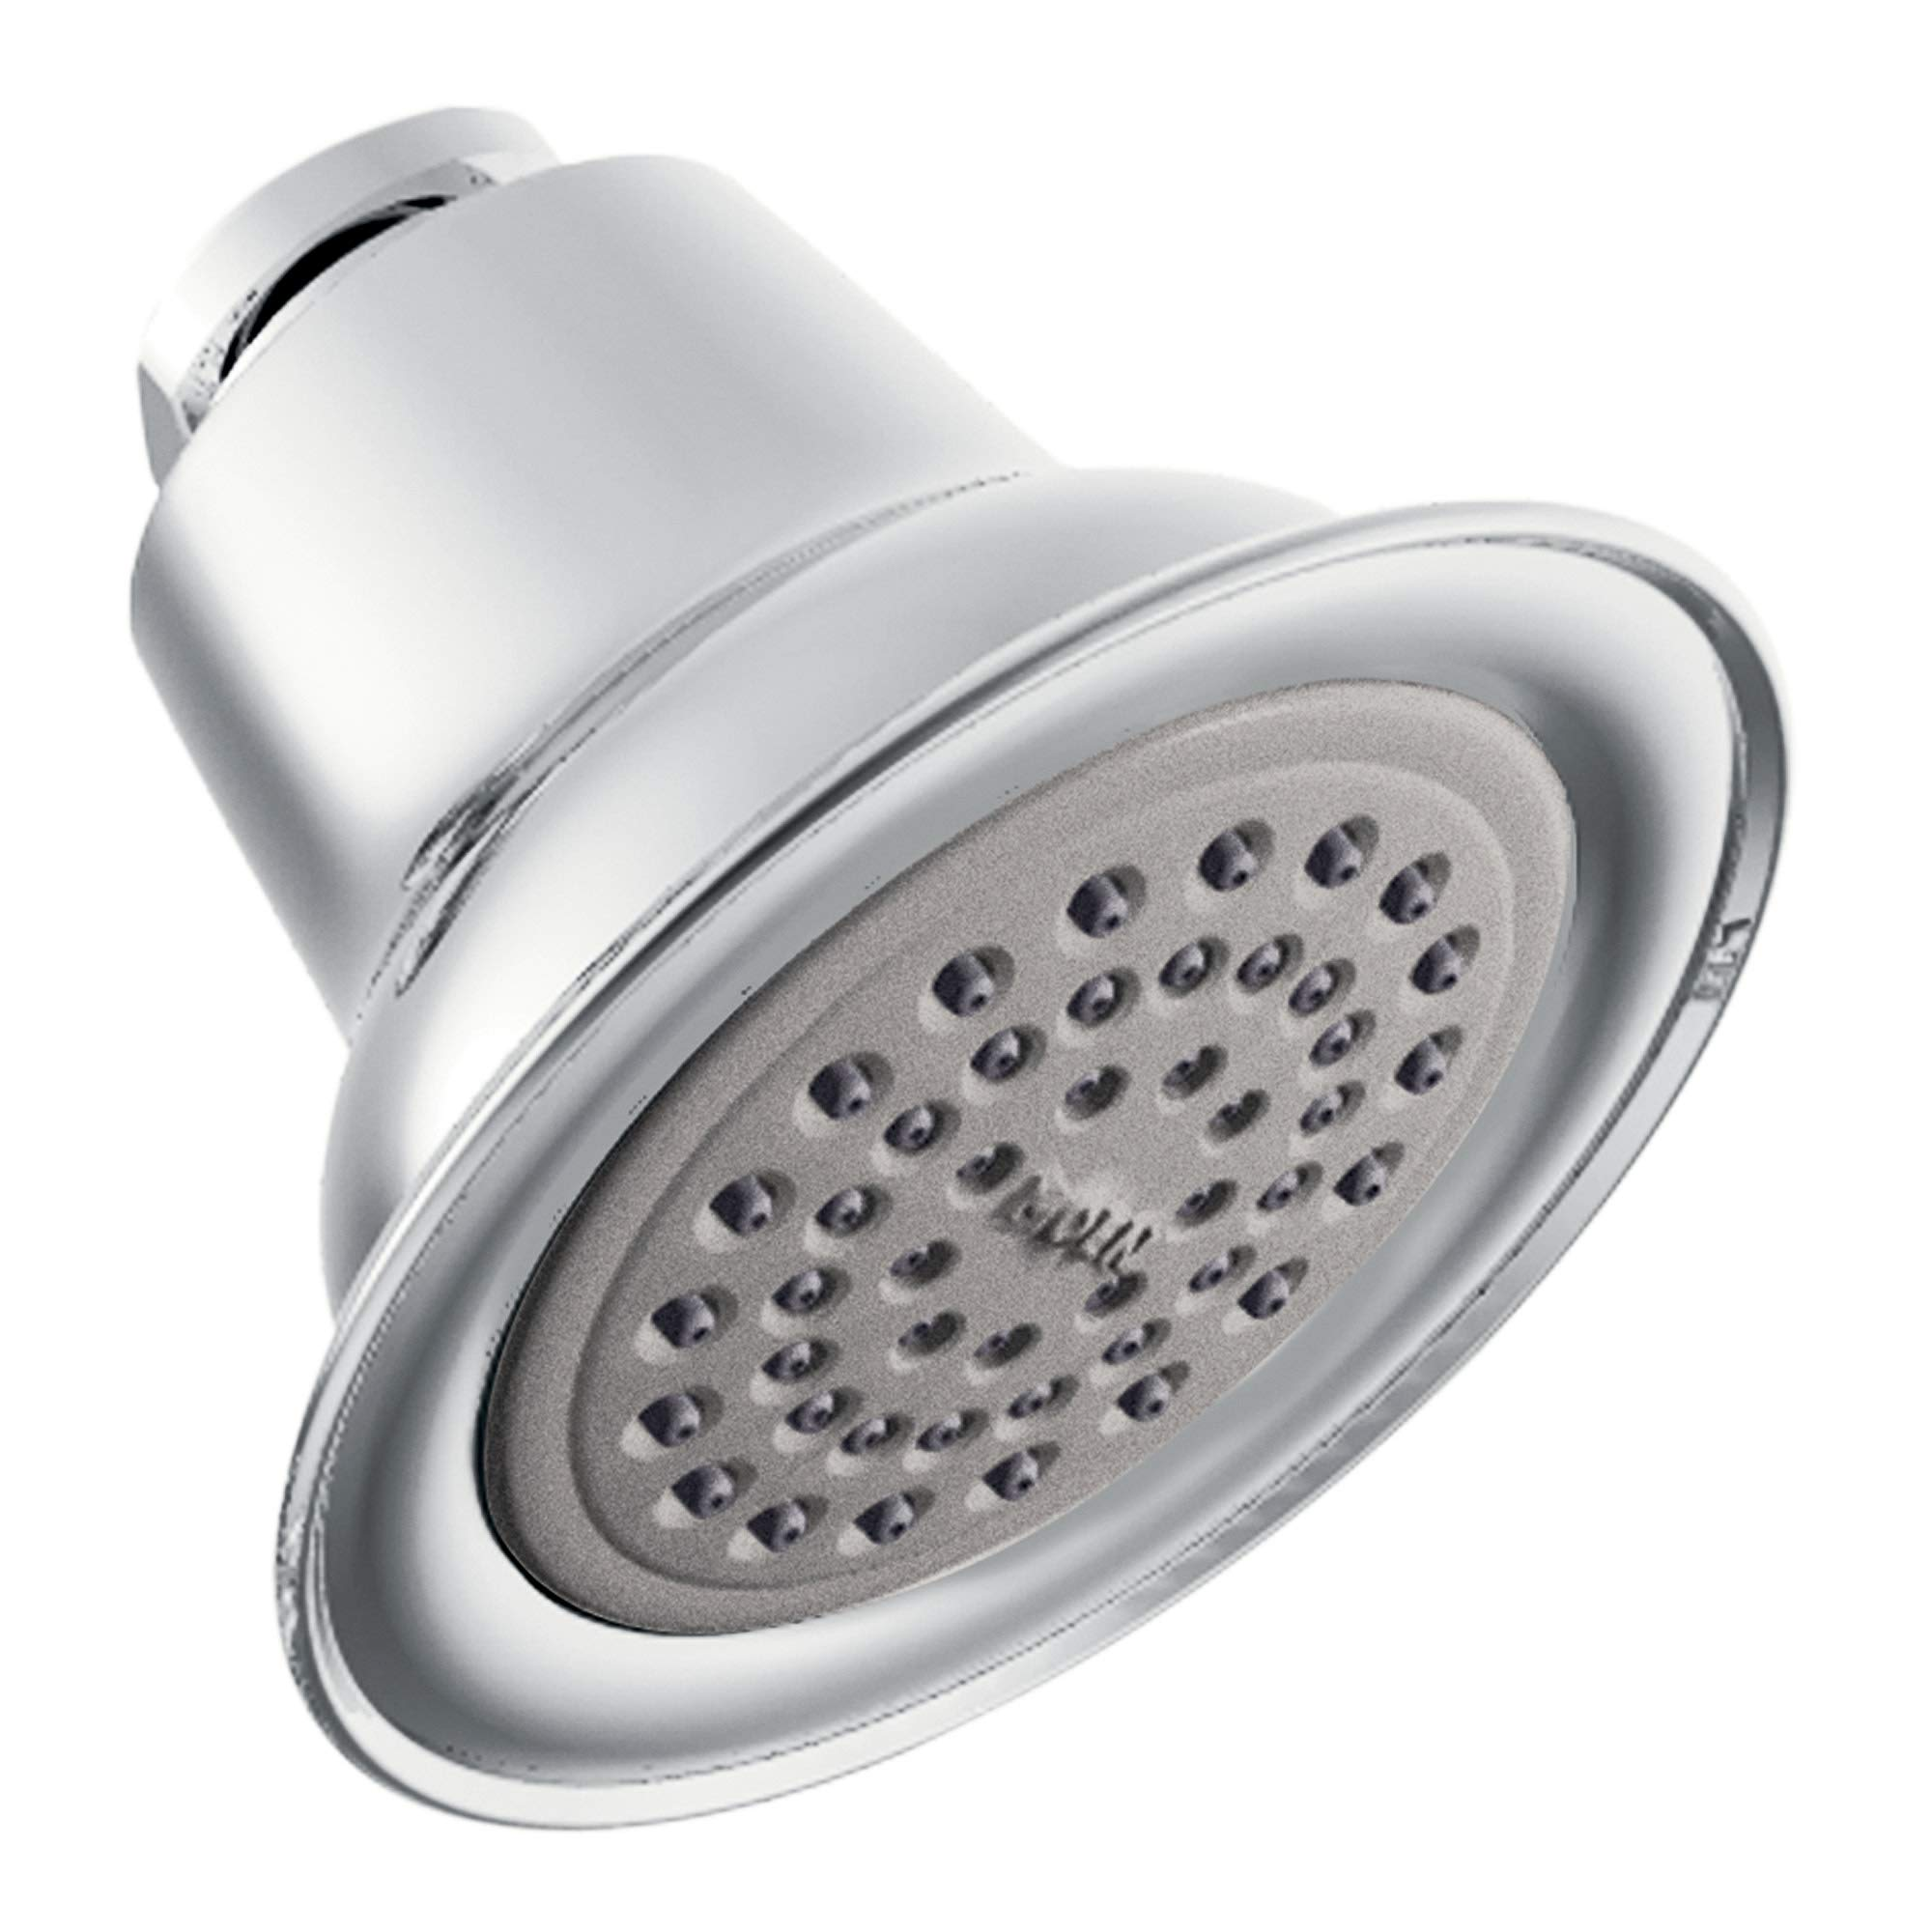 Moen 6303EP Collection 3.5-Inch Single Function Eco-Performance Shower Head, Chrome